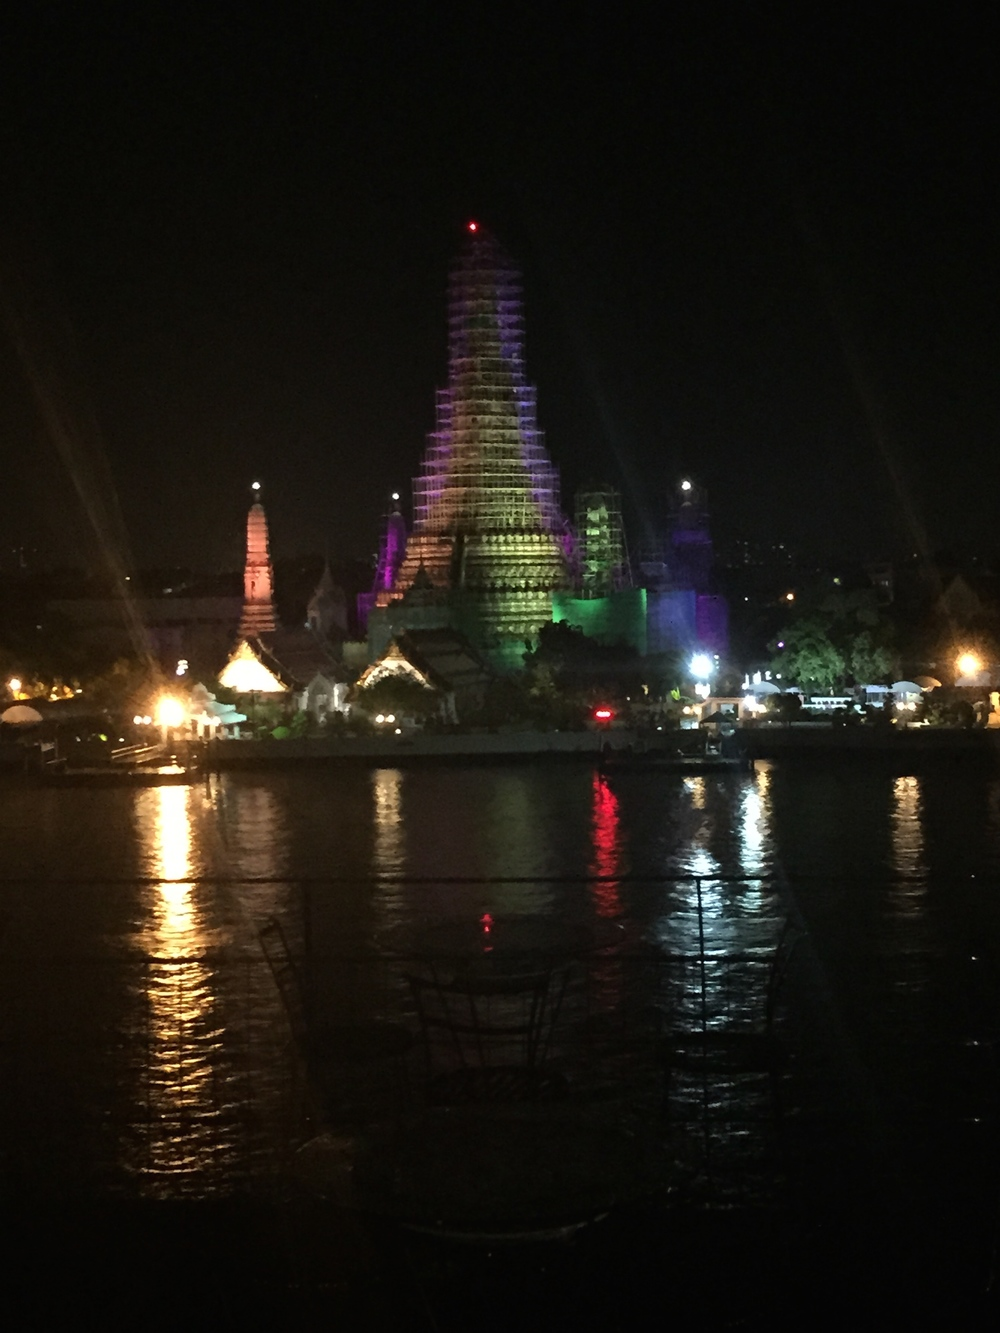 Wat Arem (one of the main attractions in Bangkok but it is under construction and covered in scaffolding.  Luckily the night view hardly shows it!)